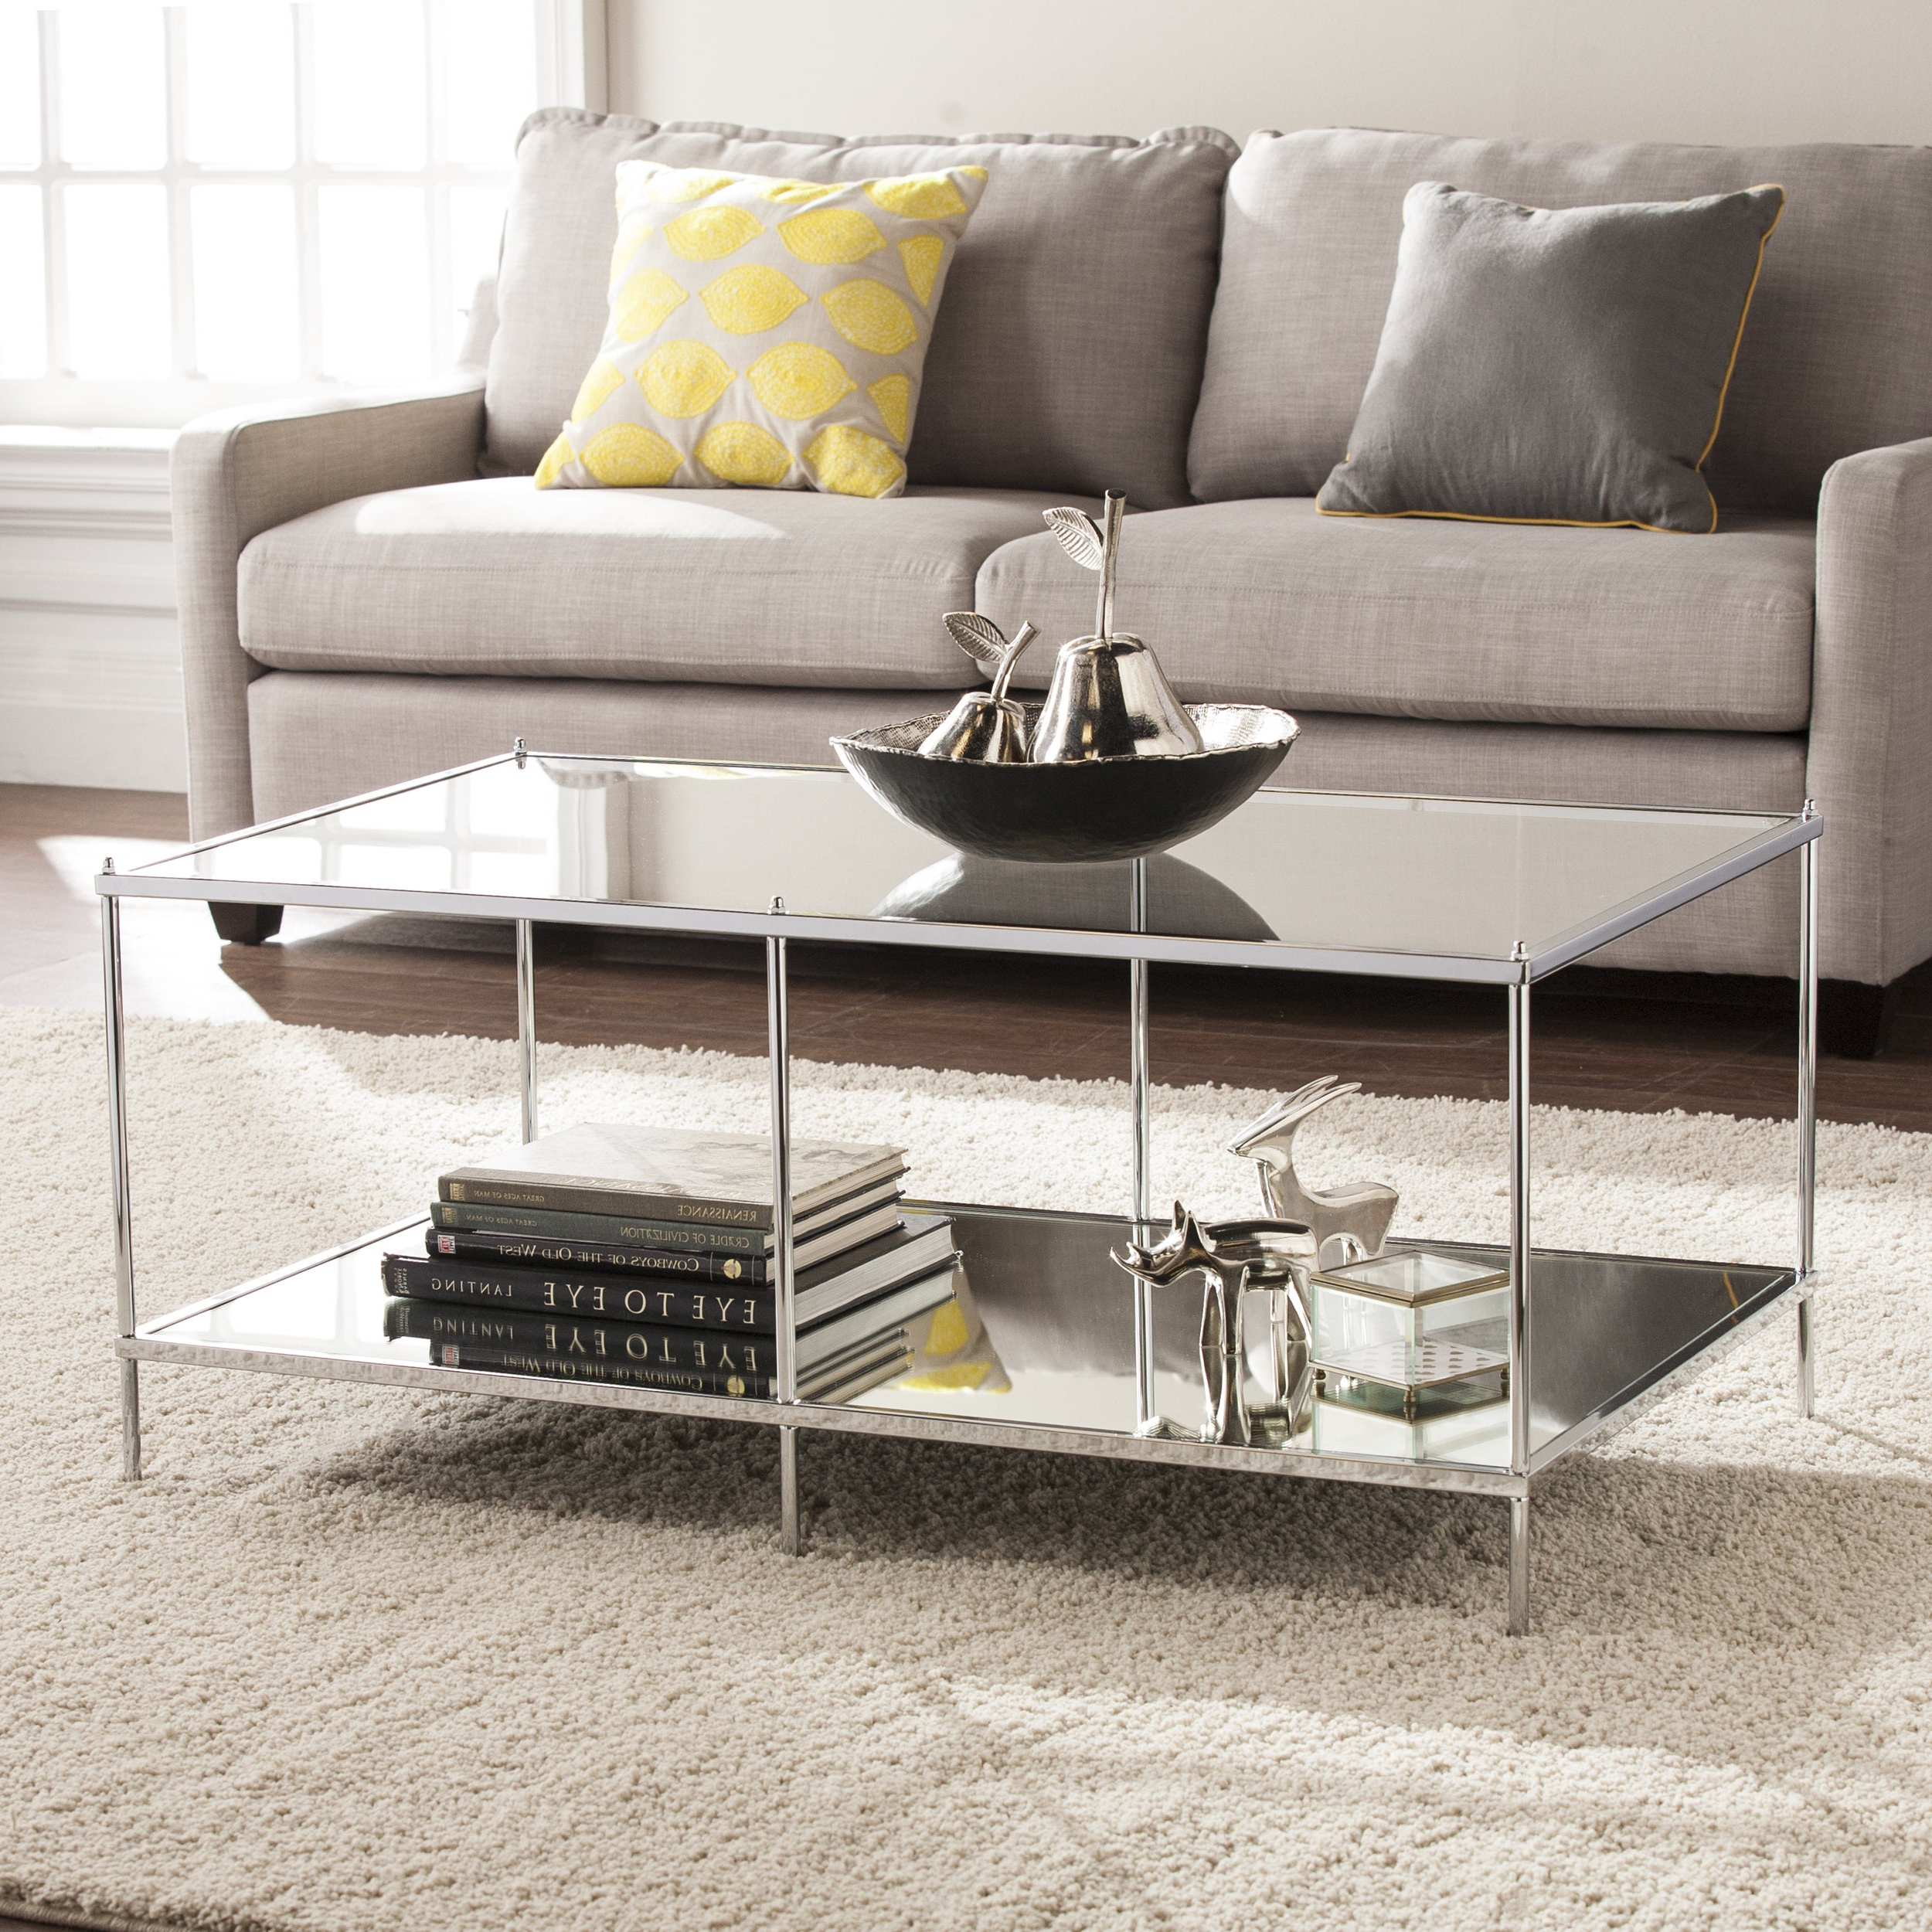 Silver Orchid Olivia Mirrored Chrome Cocktail Table Pertaining To Most Current Silver Orchid Olivia Chrome Mirrored Coffee Cocktail Tables (View 5 of 20)